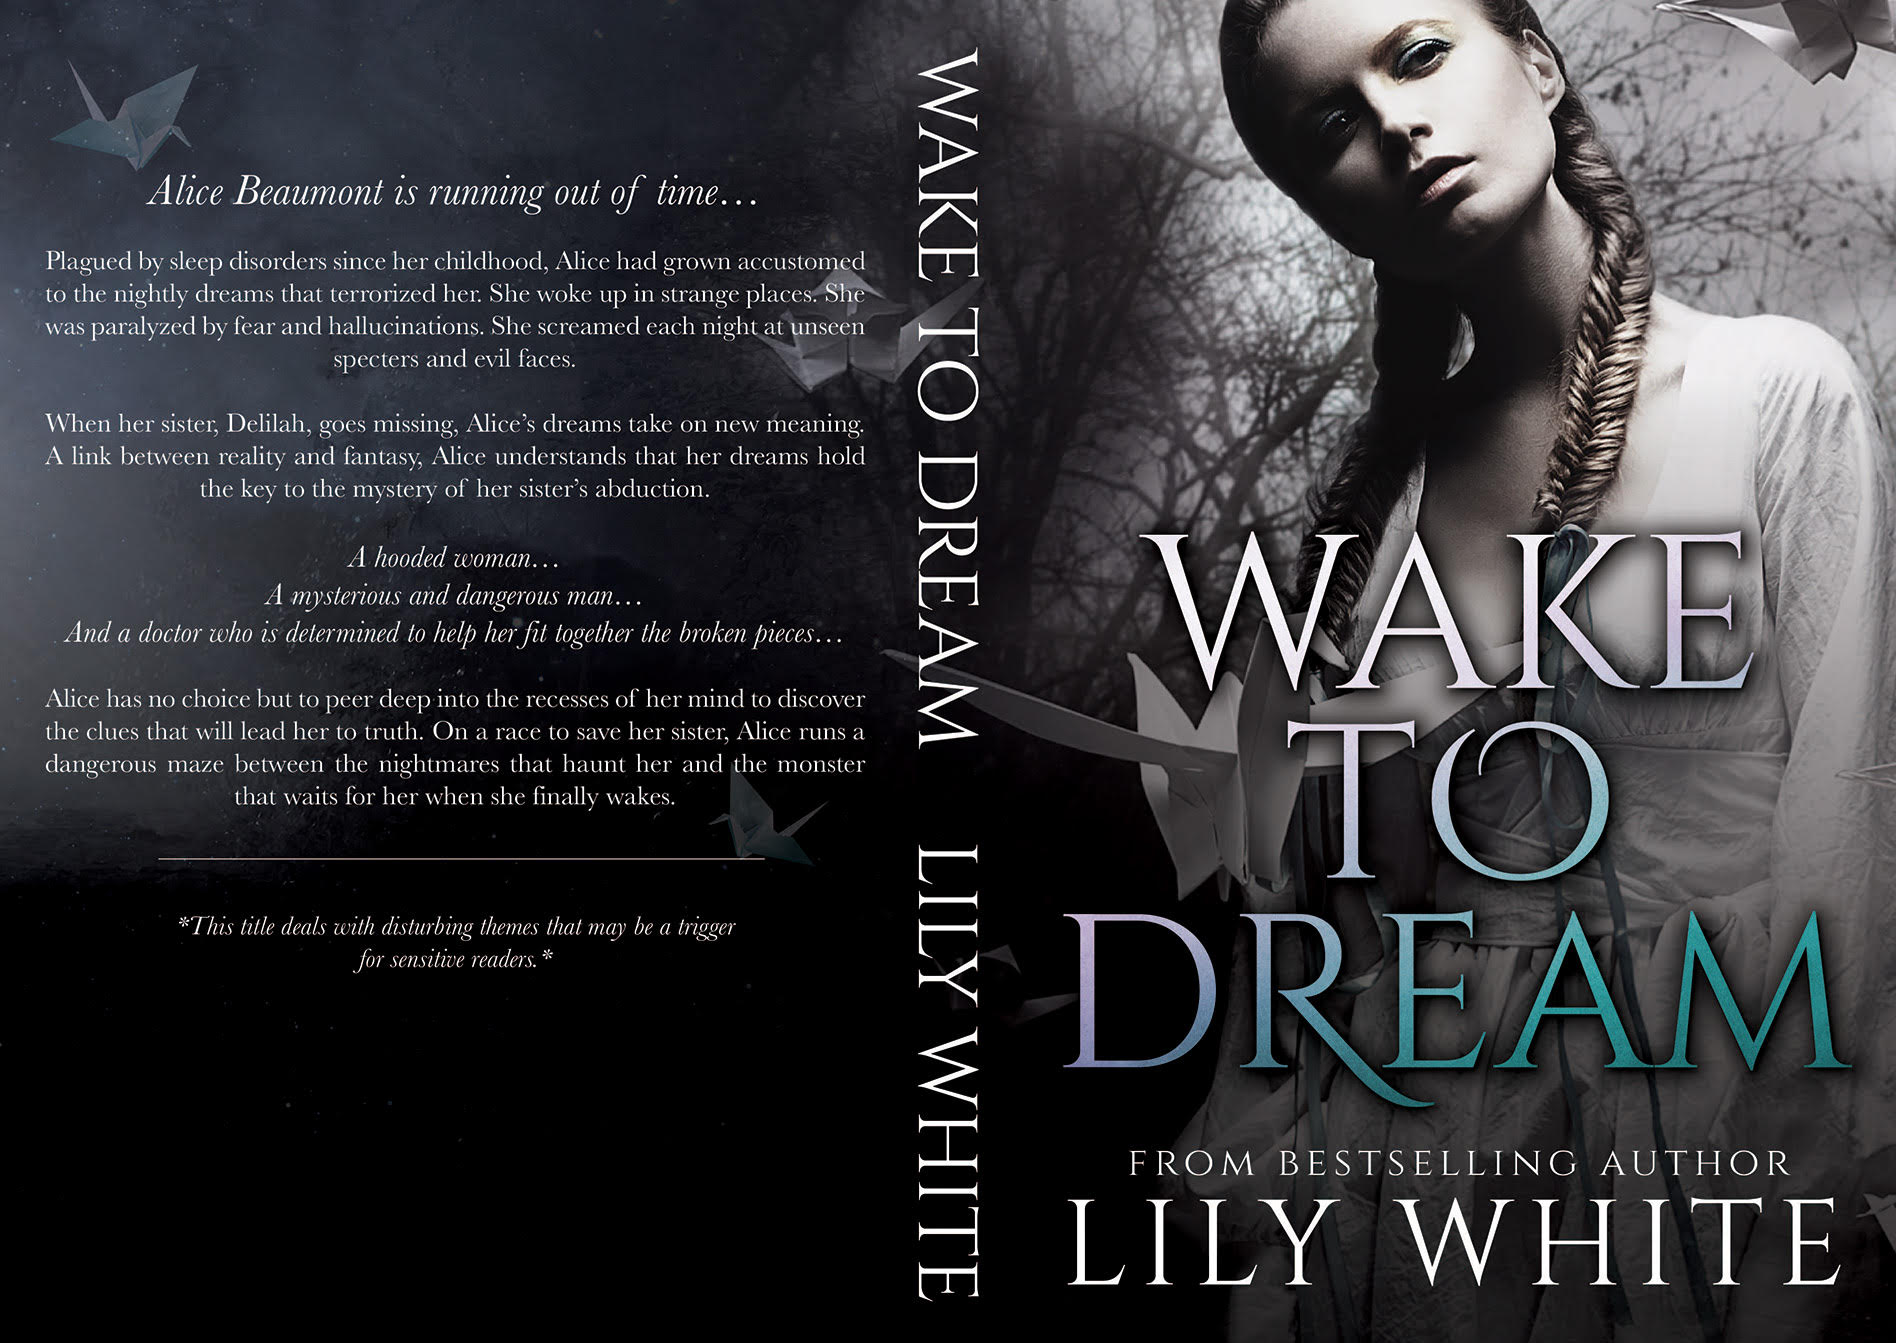 Wake To Dream by Lily White #CoverReveal @lilywhitebooks